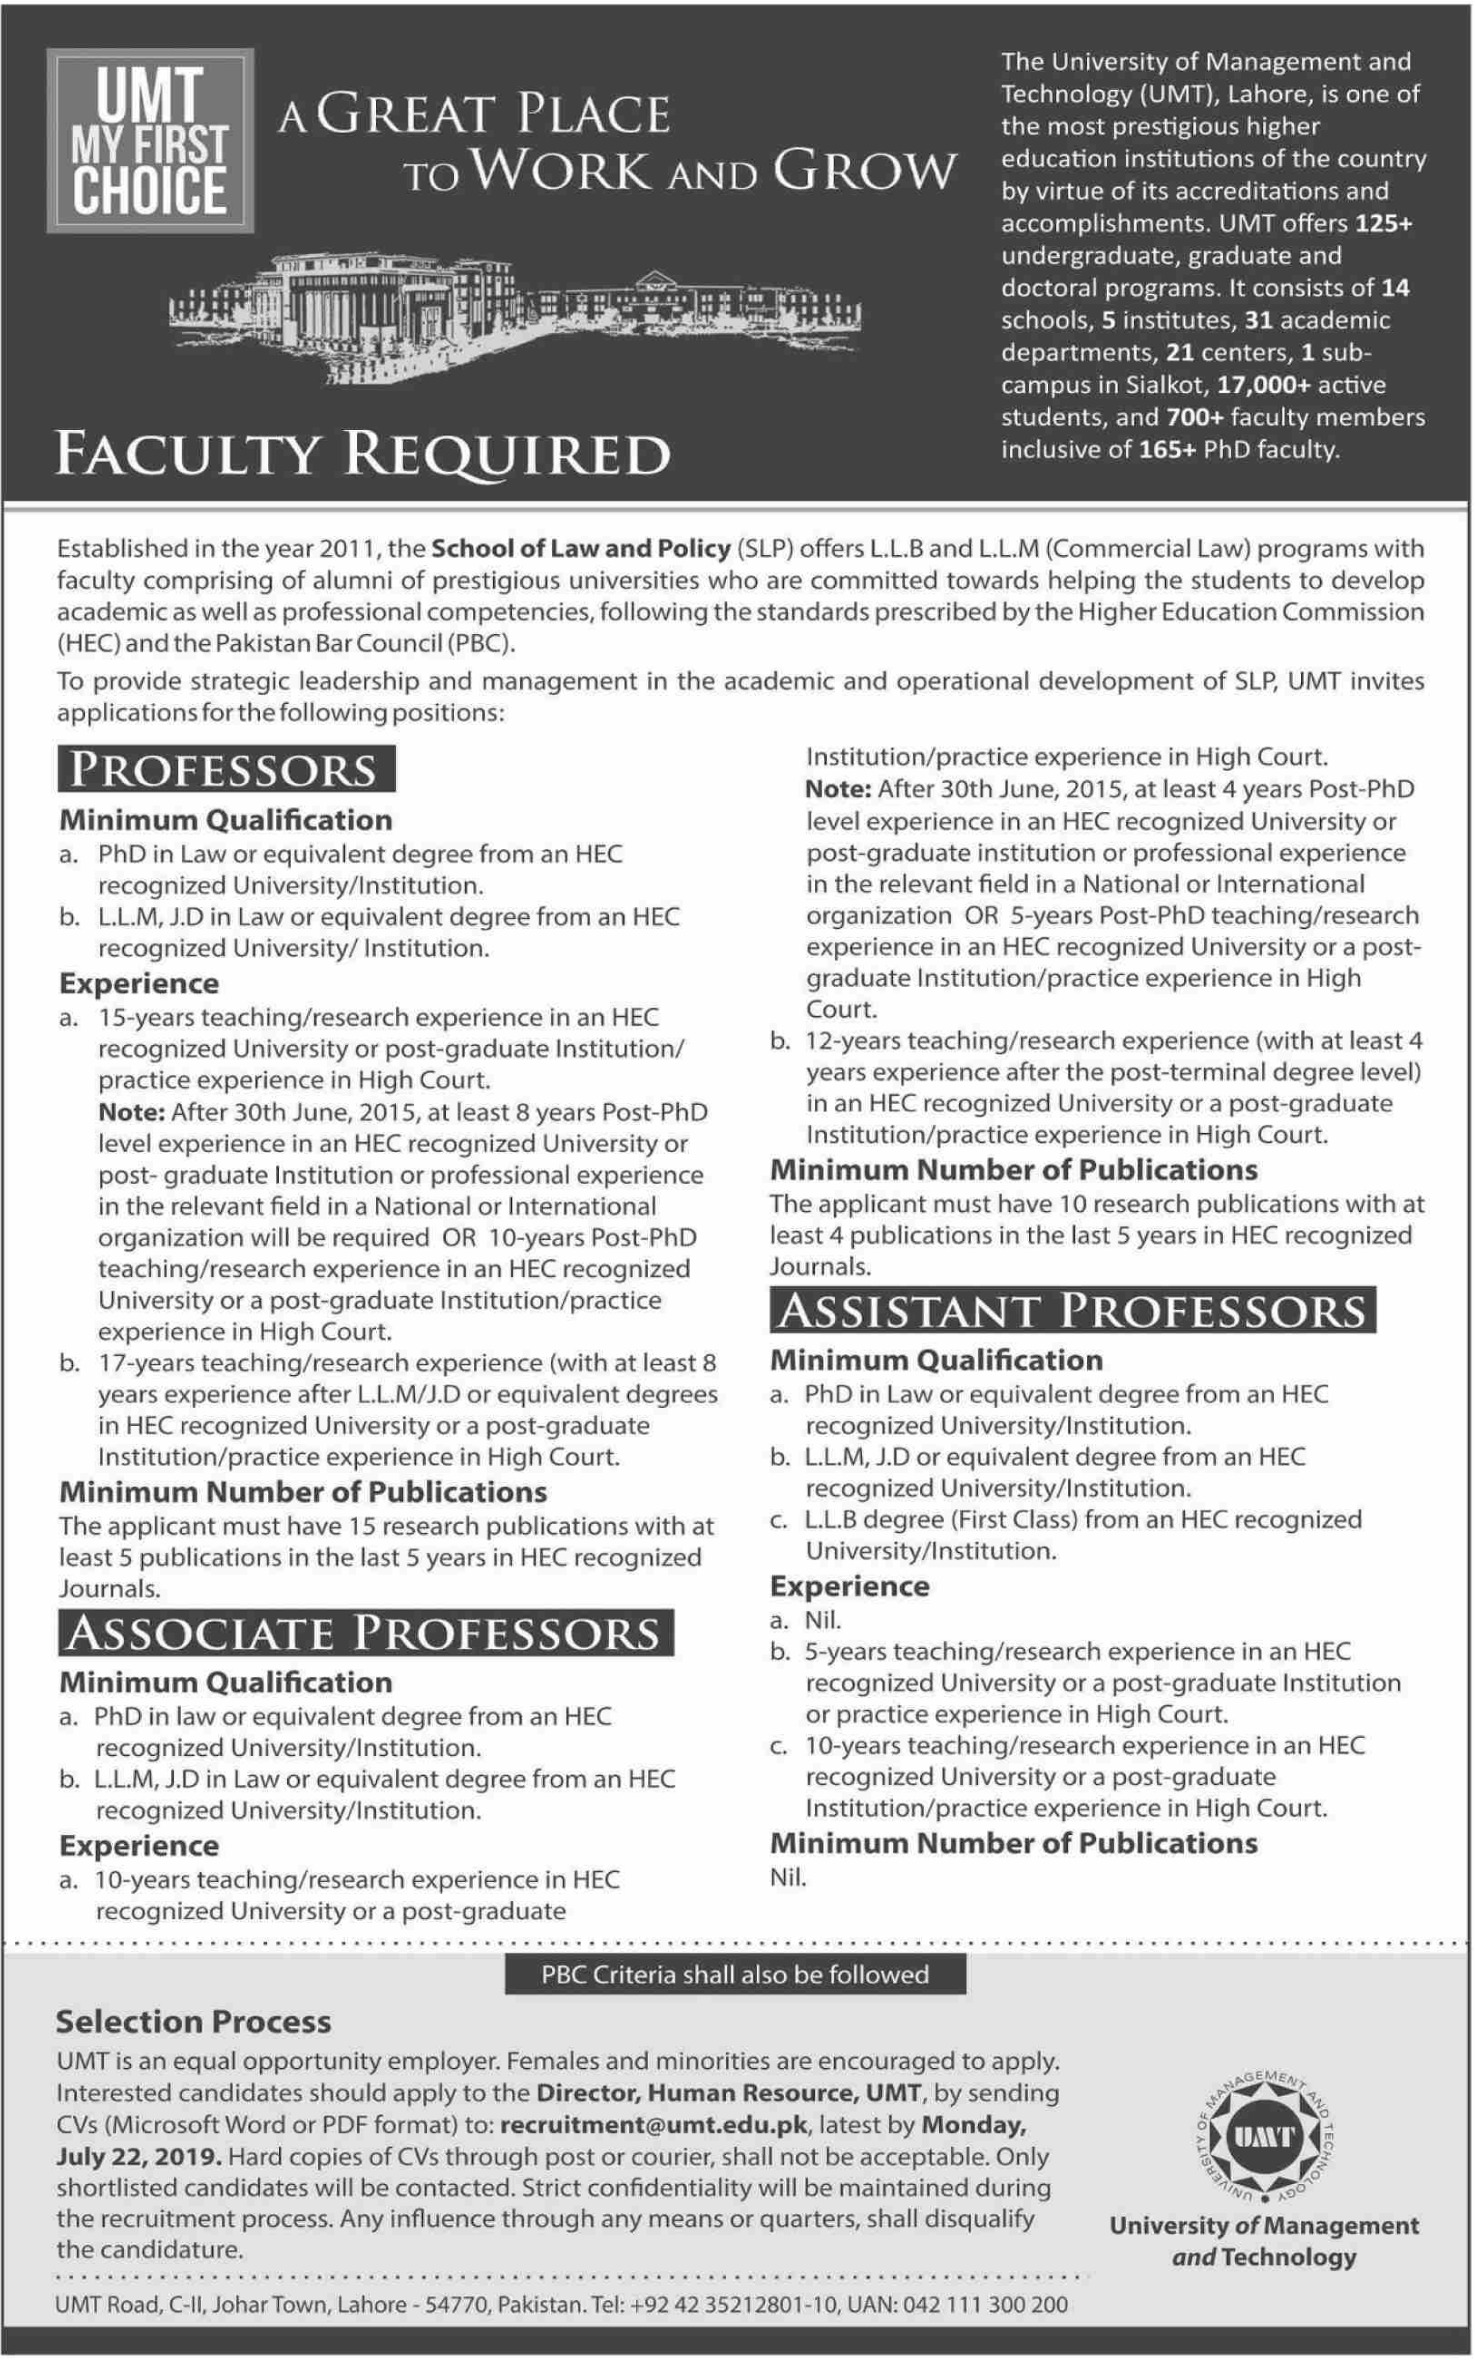 University of Management & Technology UMT Lahore Jobs 2019 School of Law and Policy